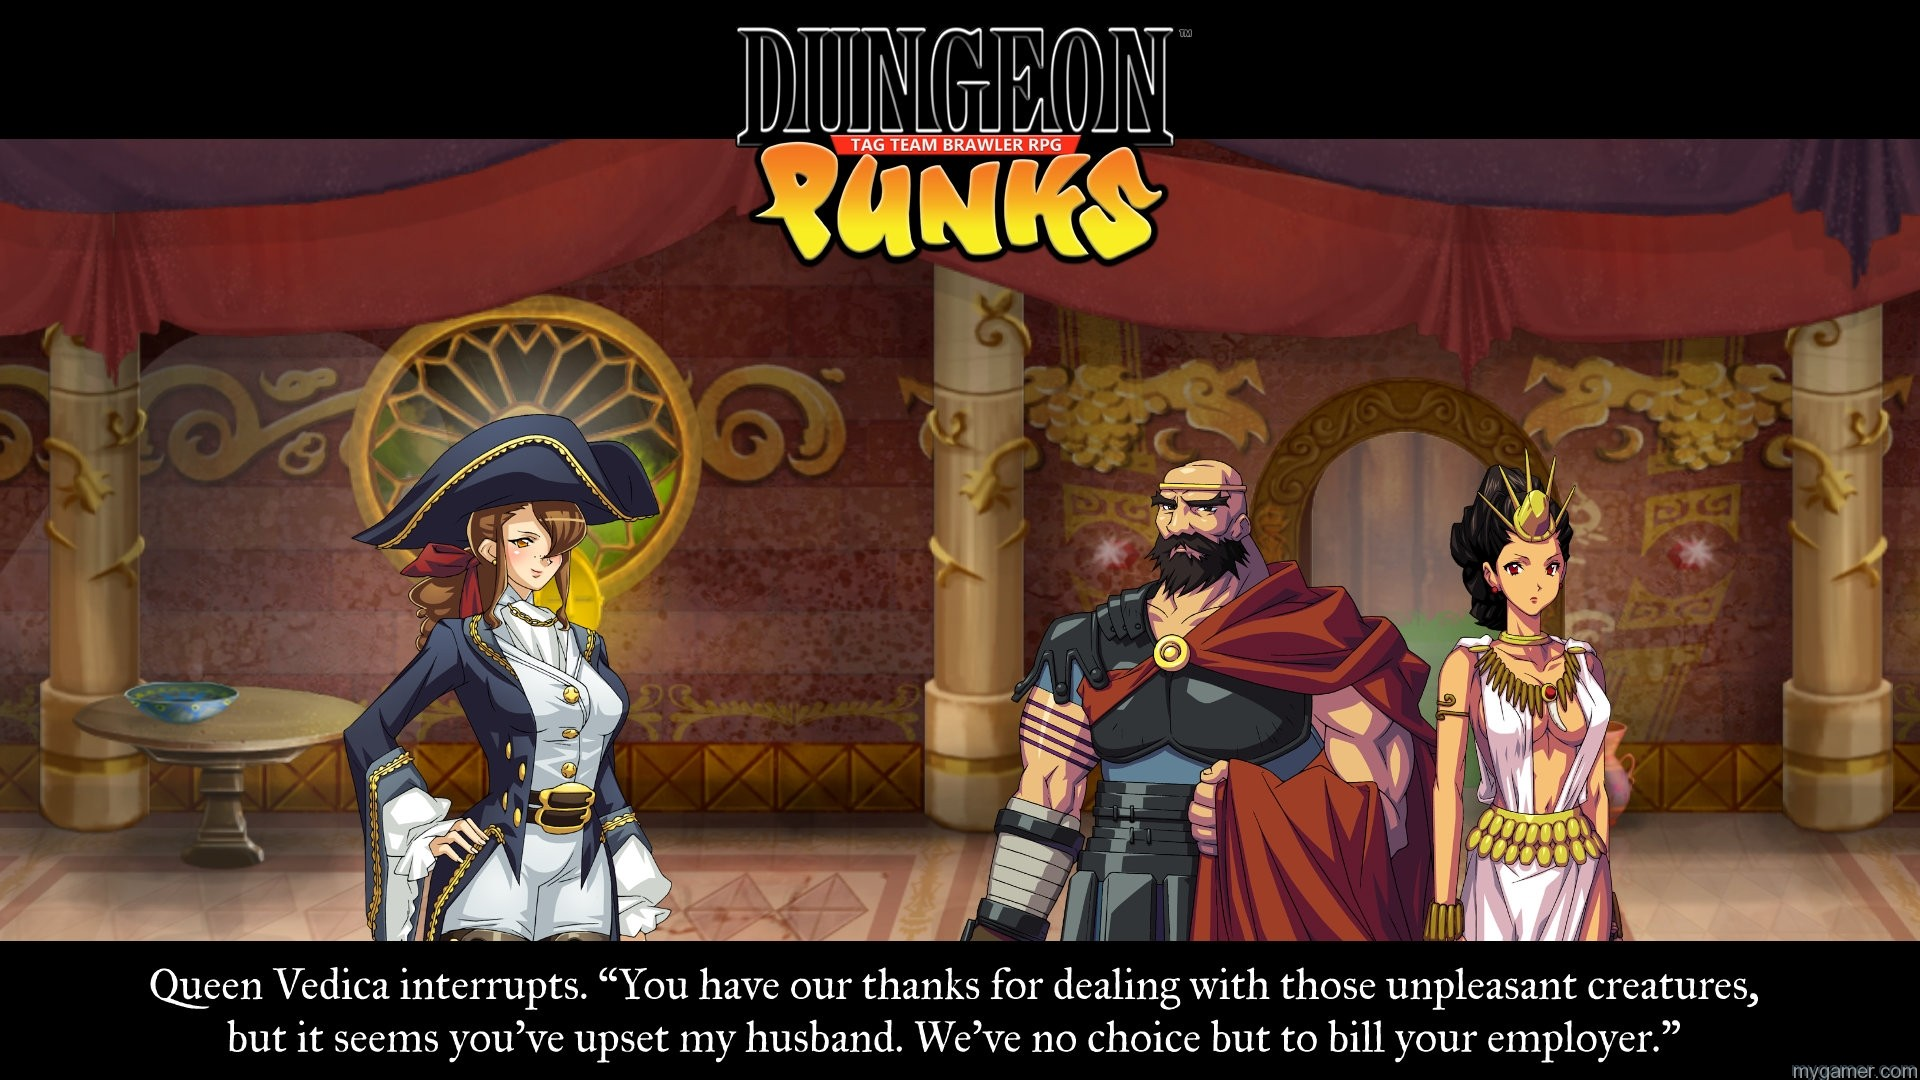 The environment is monster, goblins and fantasy, but with real world problems like billing issues and insurance premiums.  Dungeon Punks: Tag Team Brawler RPG Xbox One Review Dungeon Punks: Tag Team Brawler RPG Xbox One Review dungeon punks screen 07 story ps4 us 19apr16